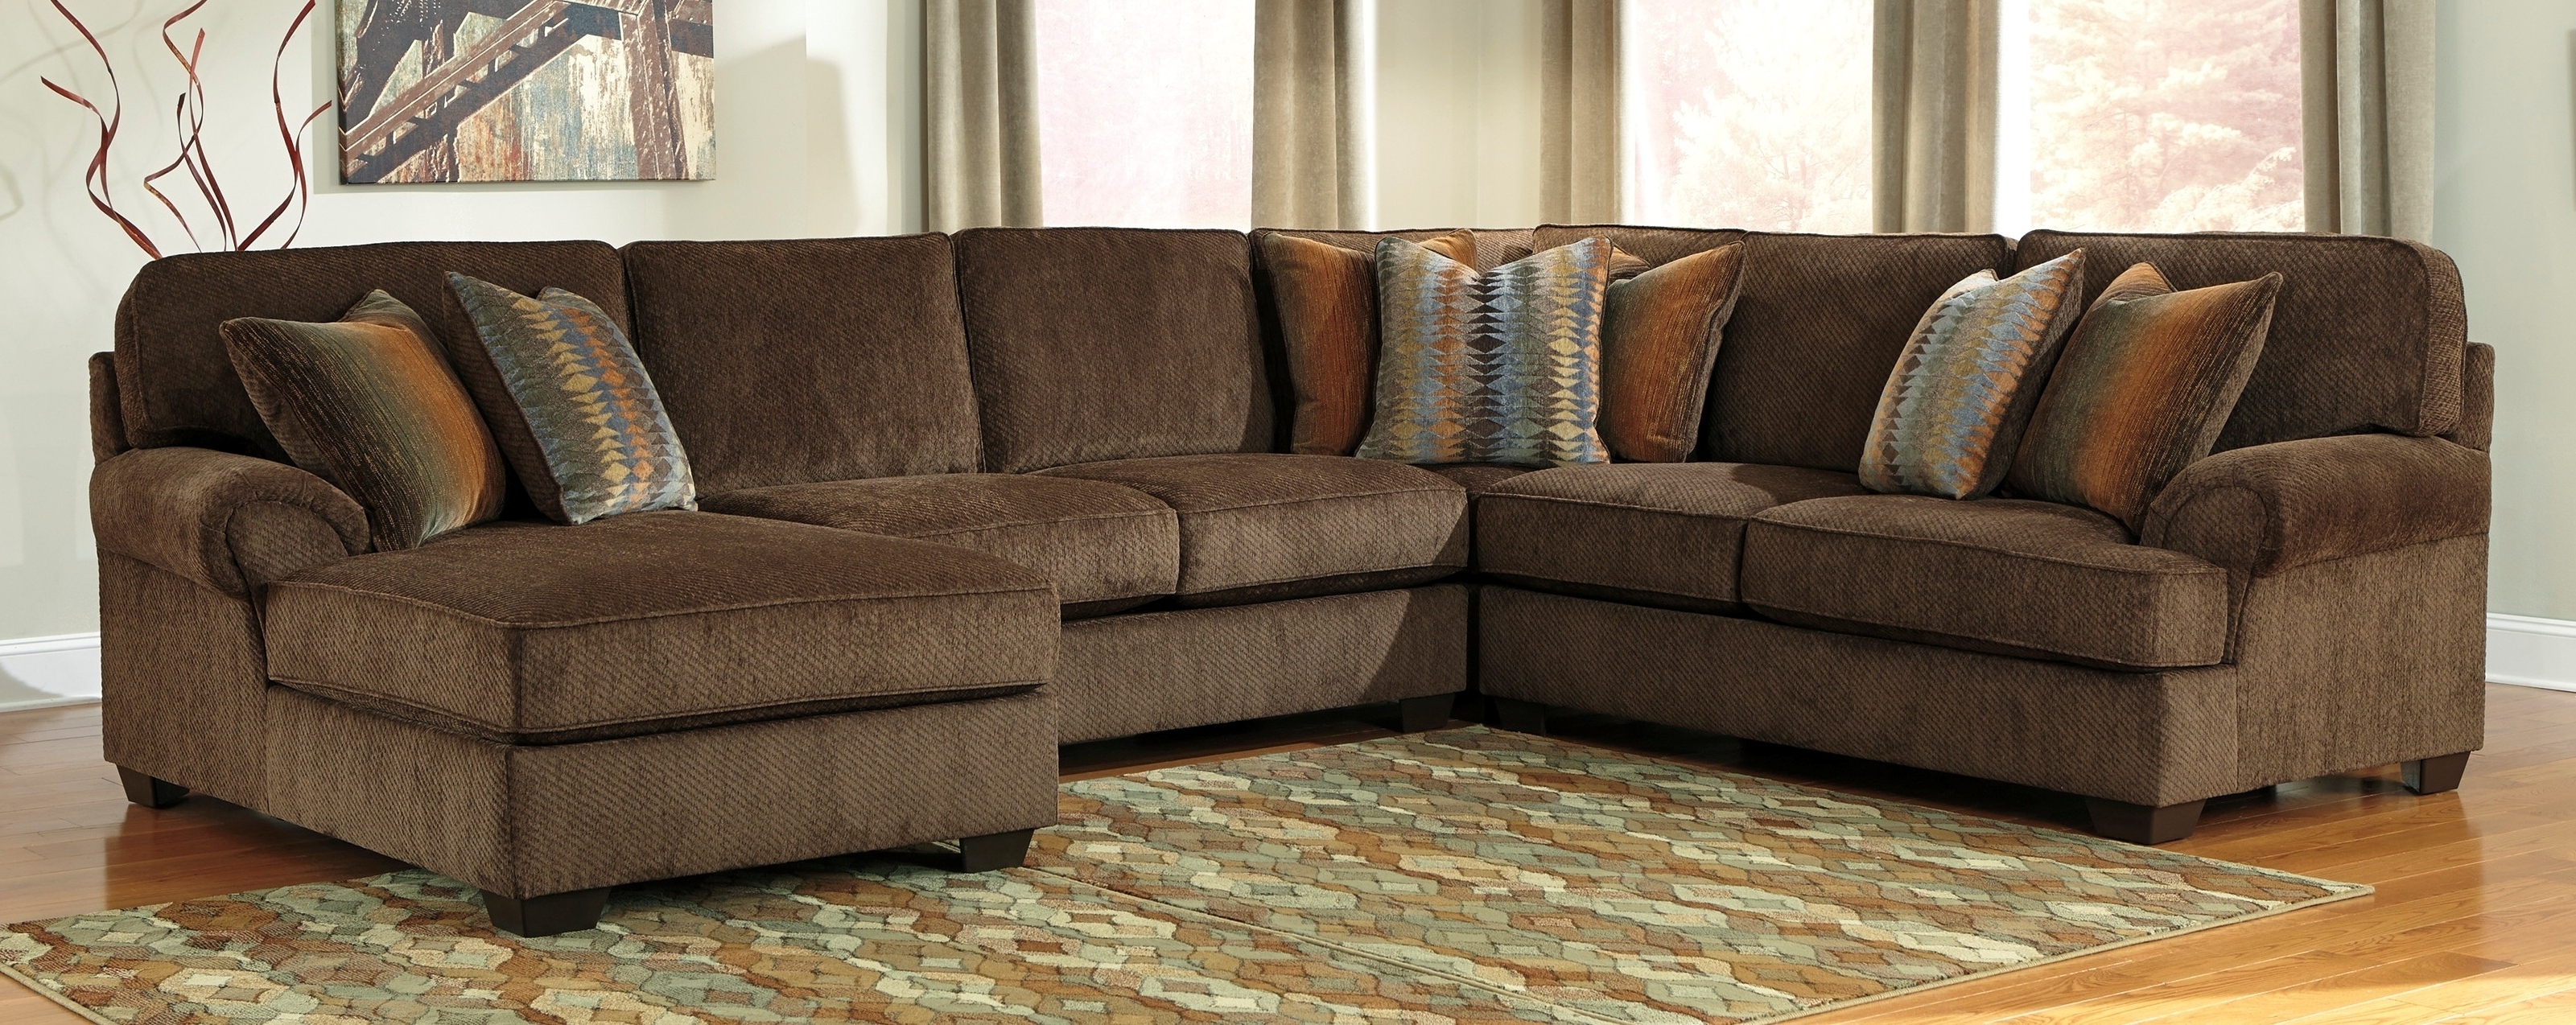 Trendy Buy Ashley Furniture 9171055 9171077 9171034 9171017 Denning Inside Ashley Furniture Sectionals With Chaise (View 5 of 15)